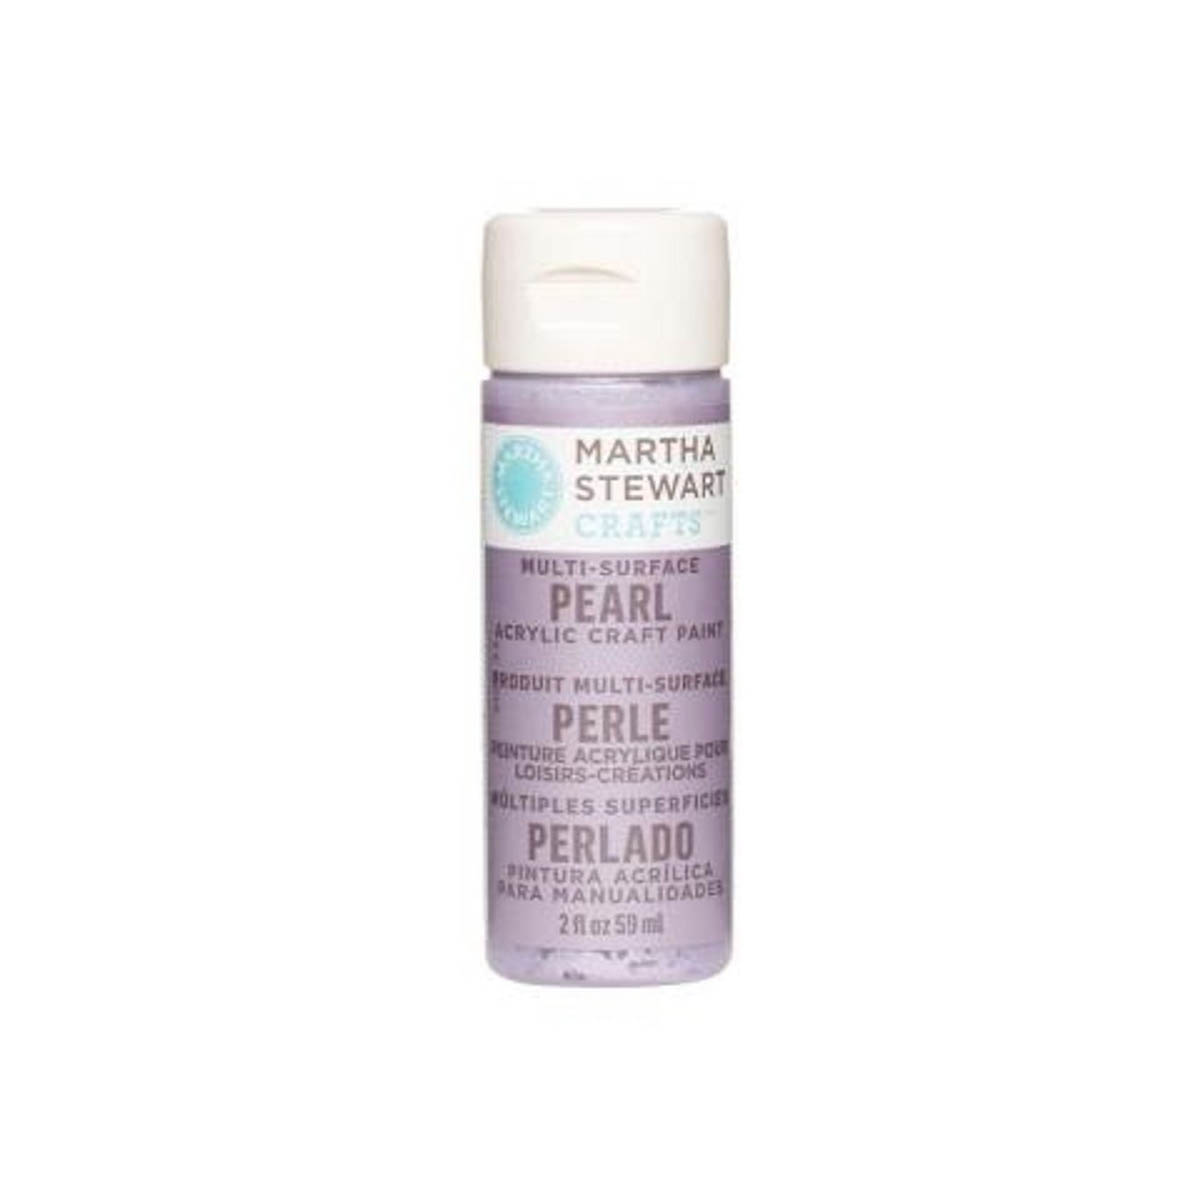 Martha Stewart Crafts ® 2oz Multi-Surface Pearl Acrylic Craft Paint - Eclipse